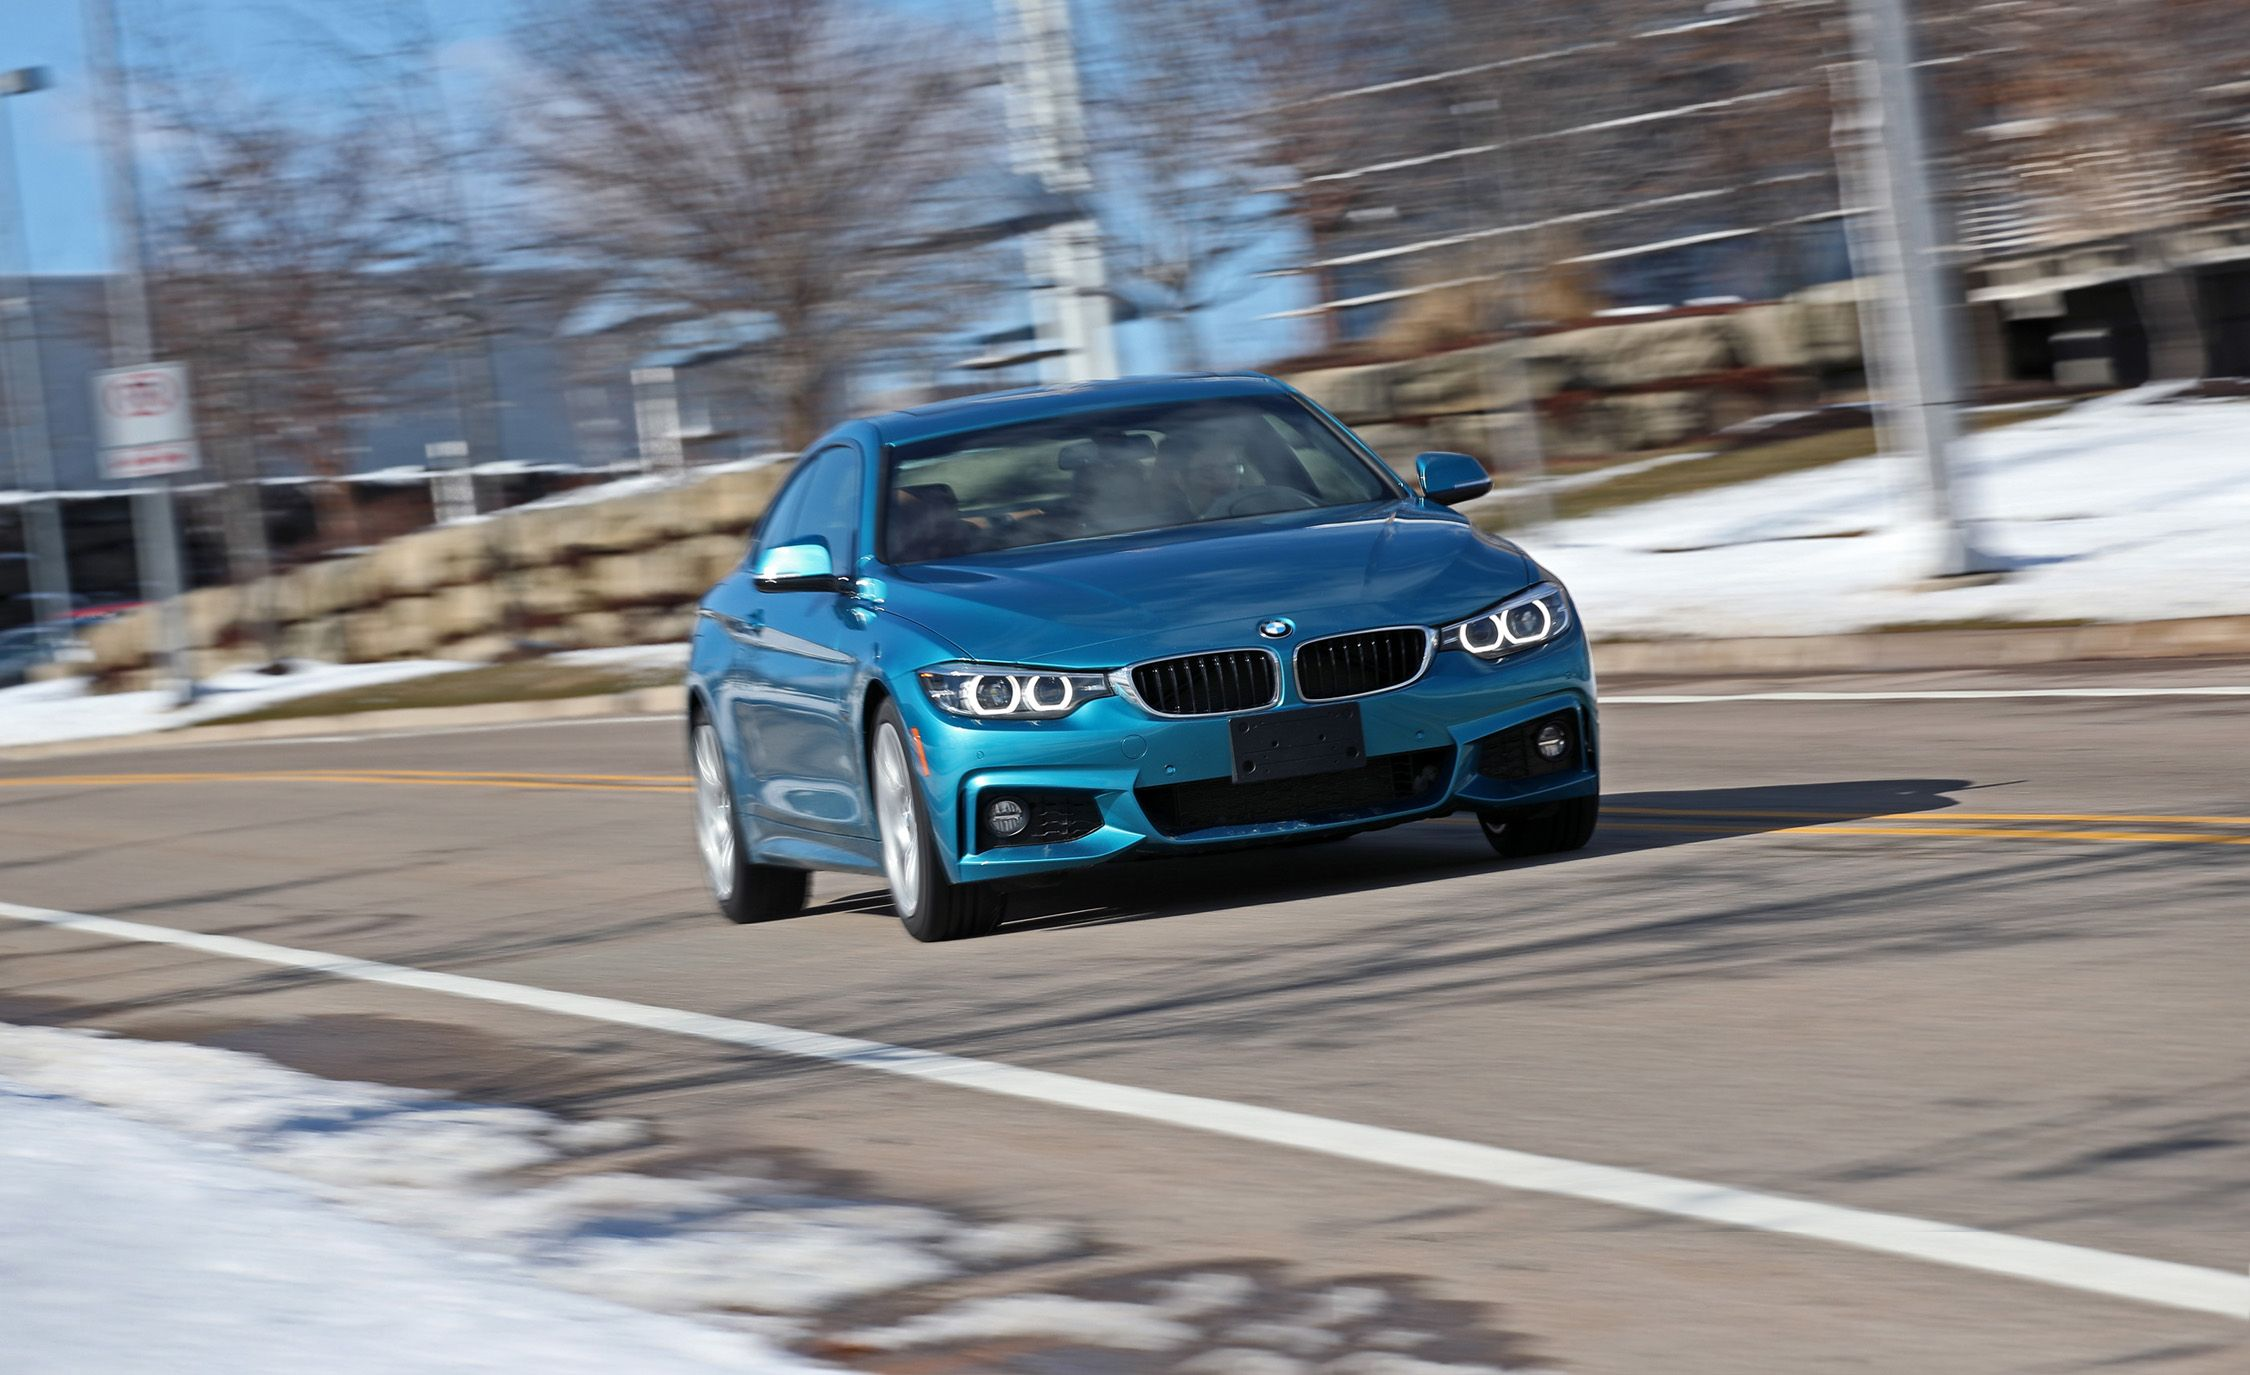 2018 Bmw 430i Coupe Manual Tested Grand Touring Done Right Review Car And Driver